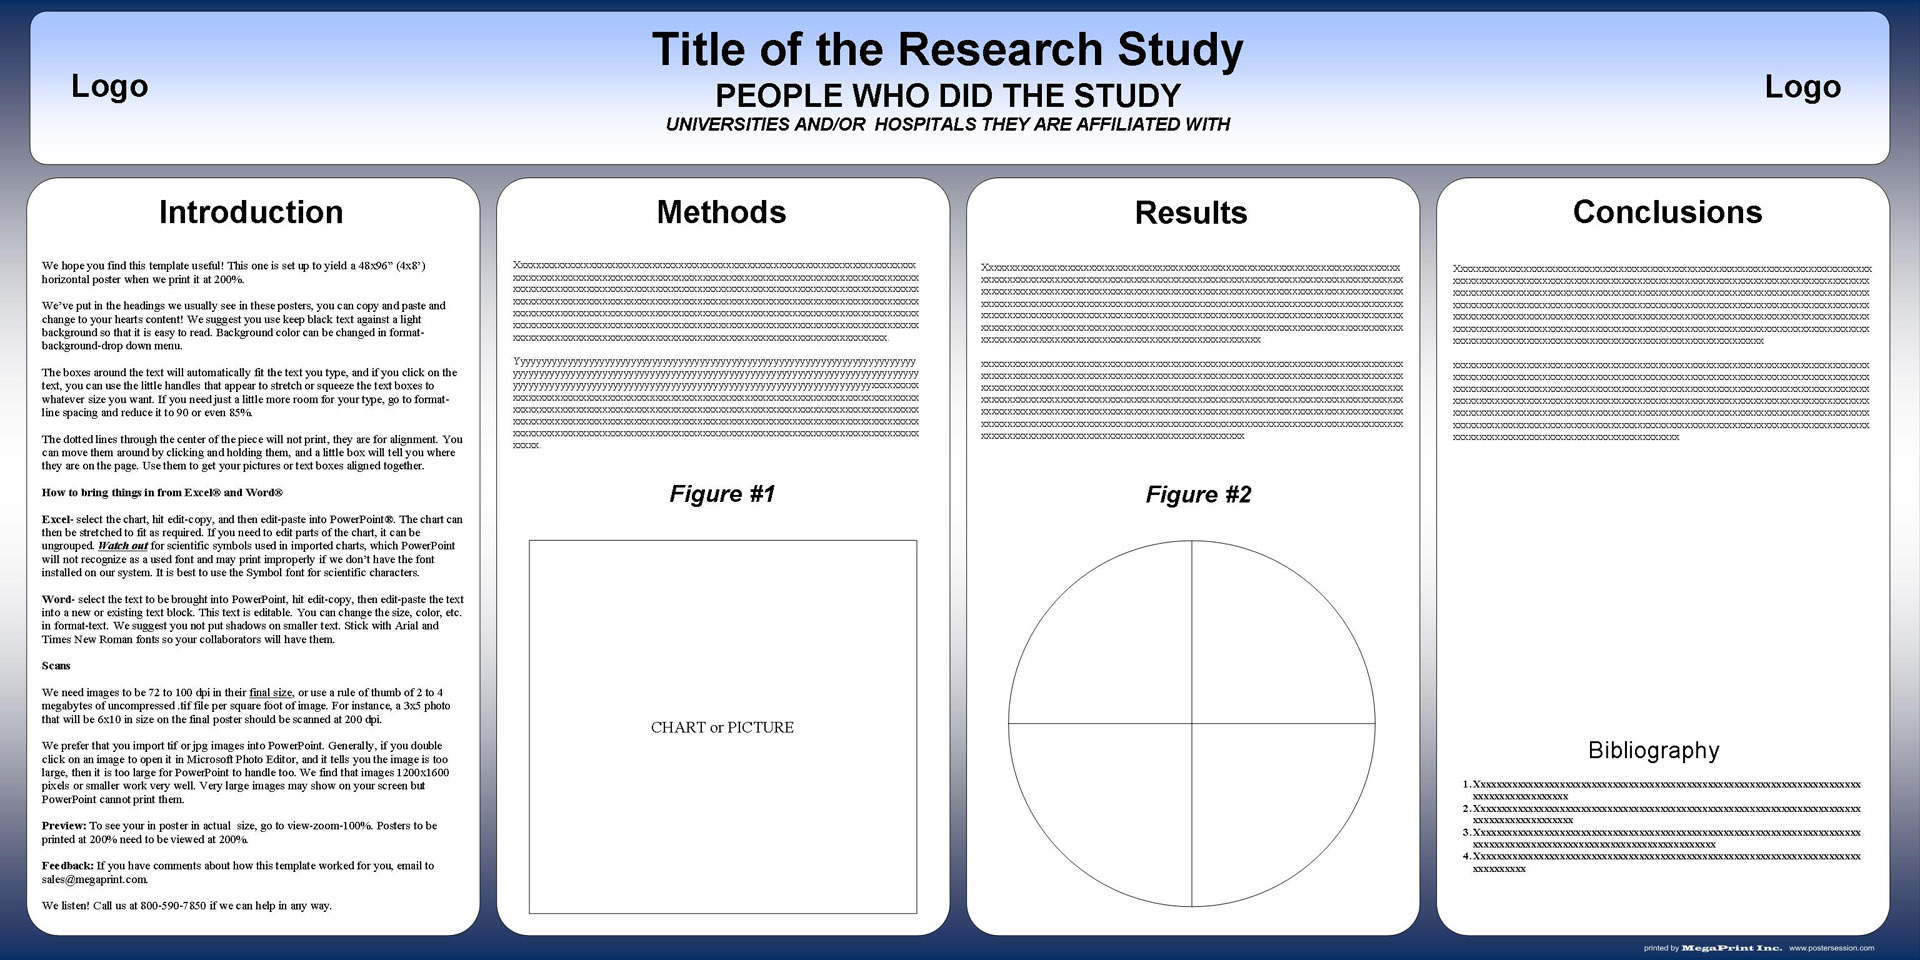 Free Powerpoint Scientific Research Poster Templates for Printing opZXOLPZ